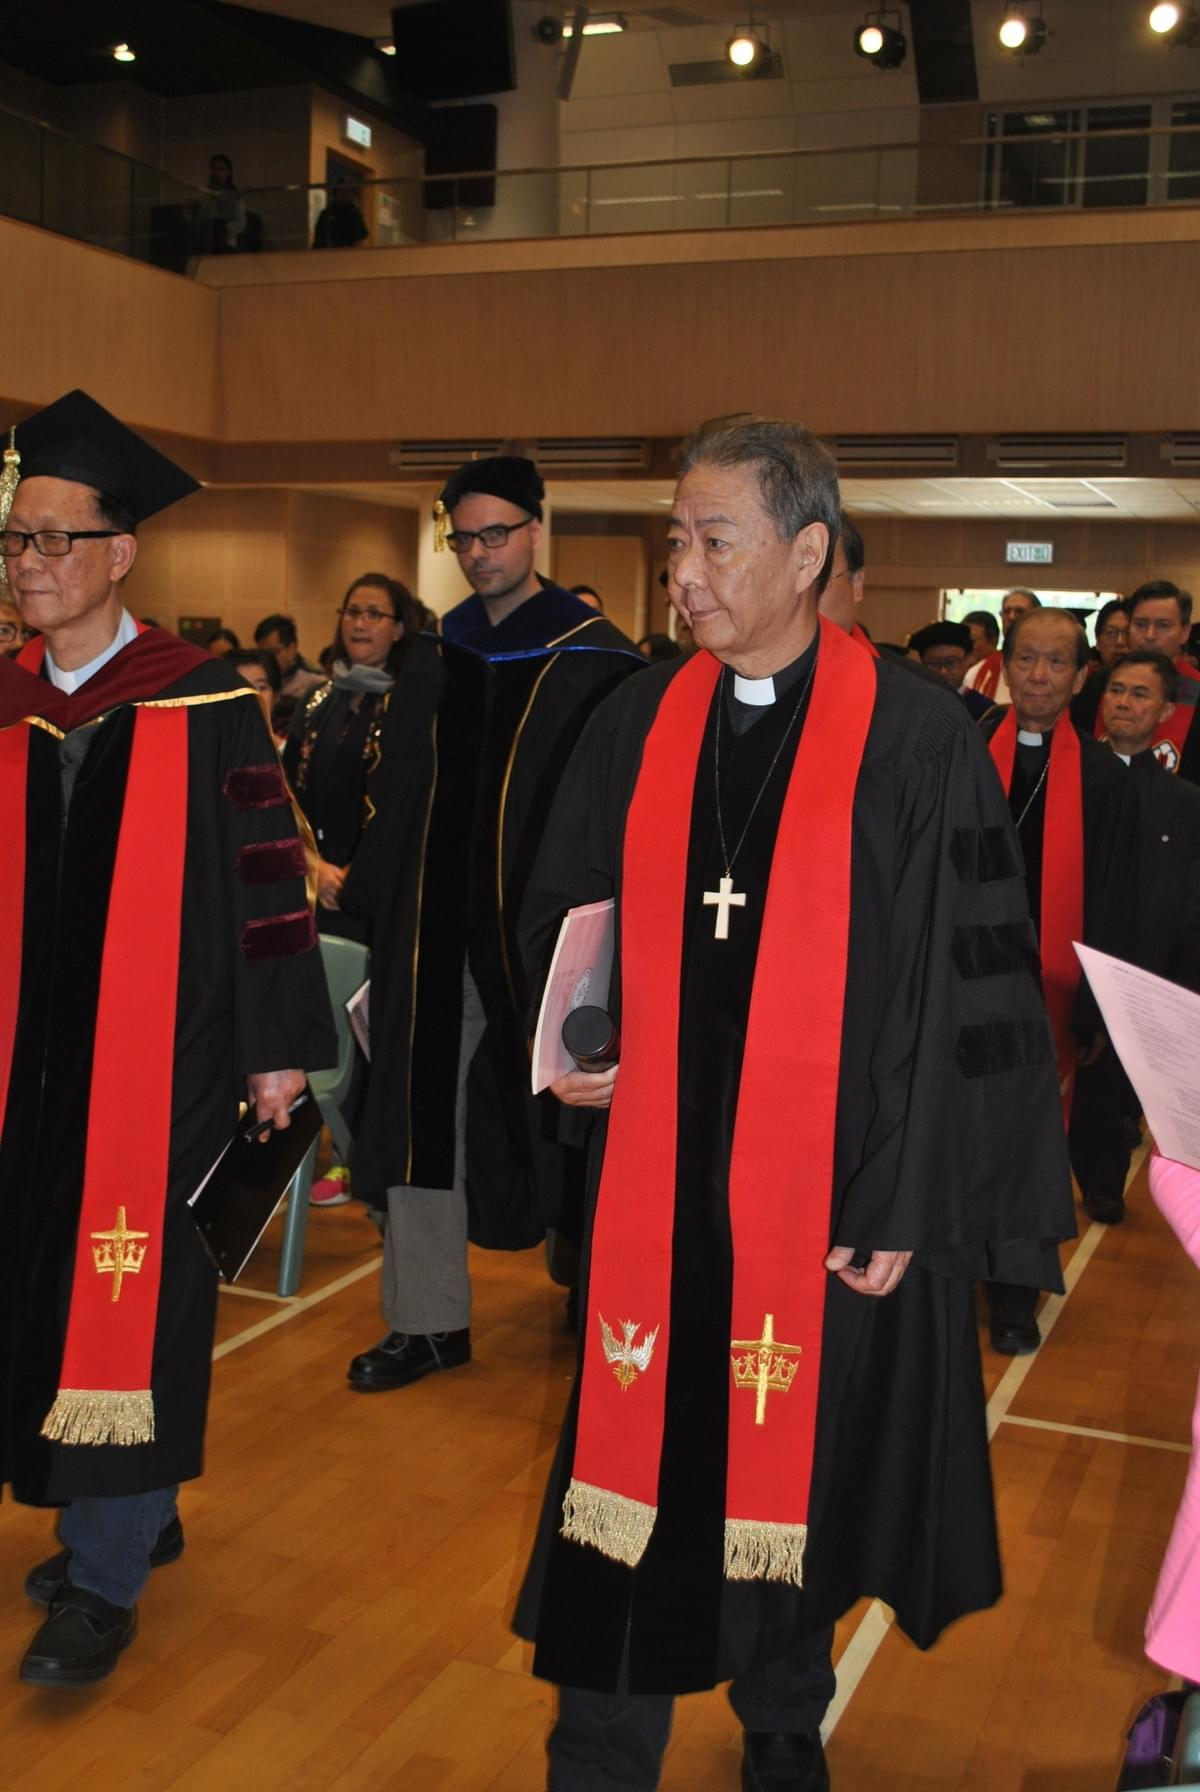 Rev. Dr. Allan YUNG, LCHKS President, Heading the Procession